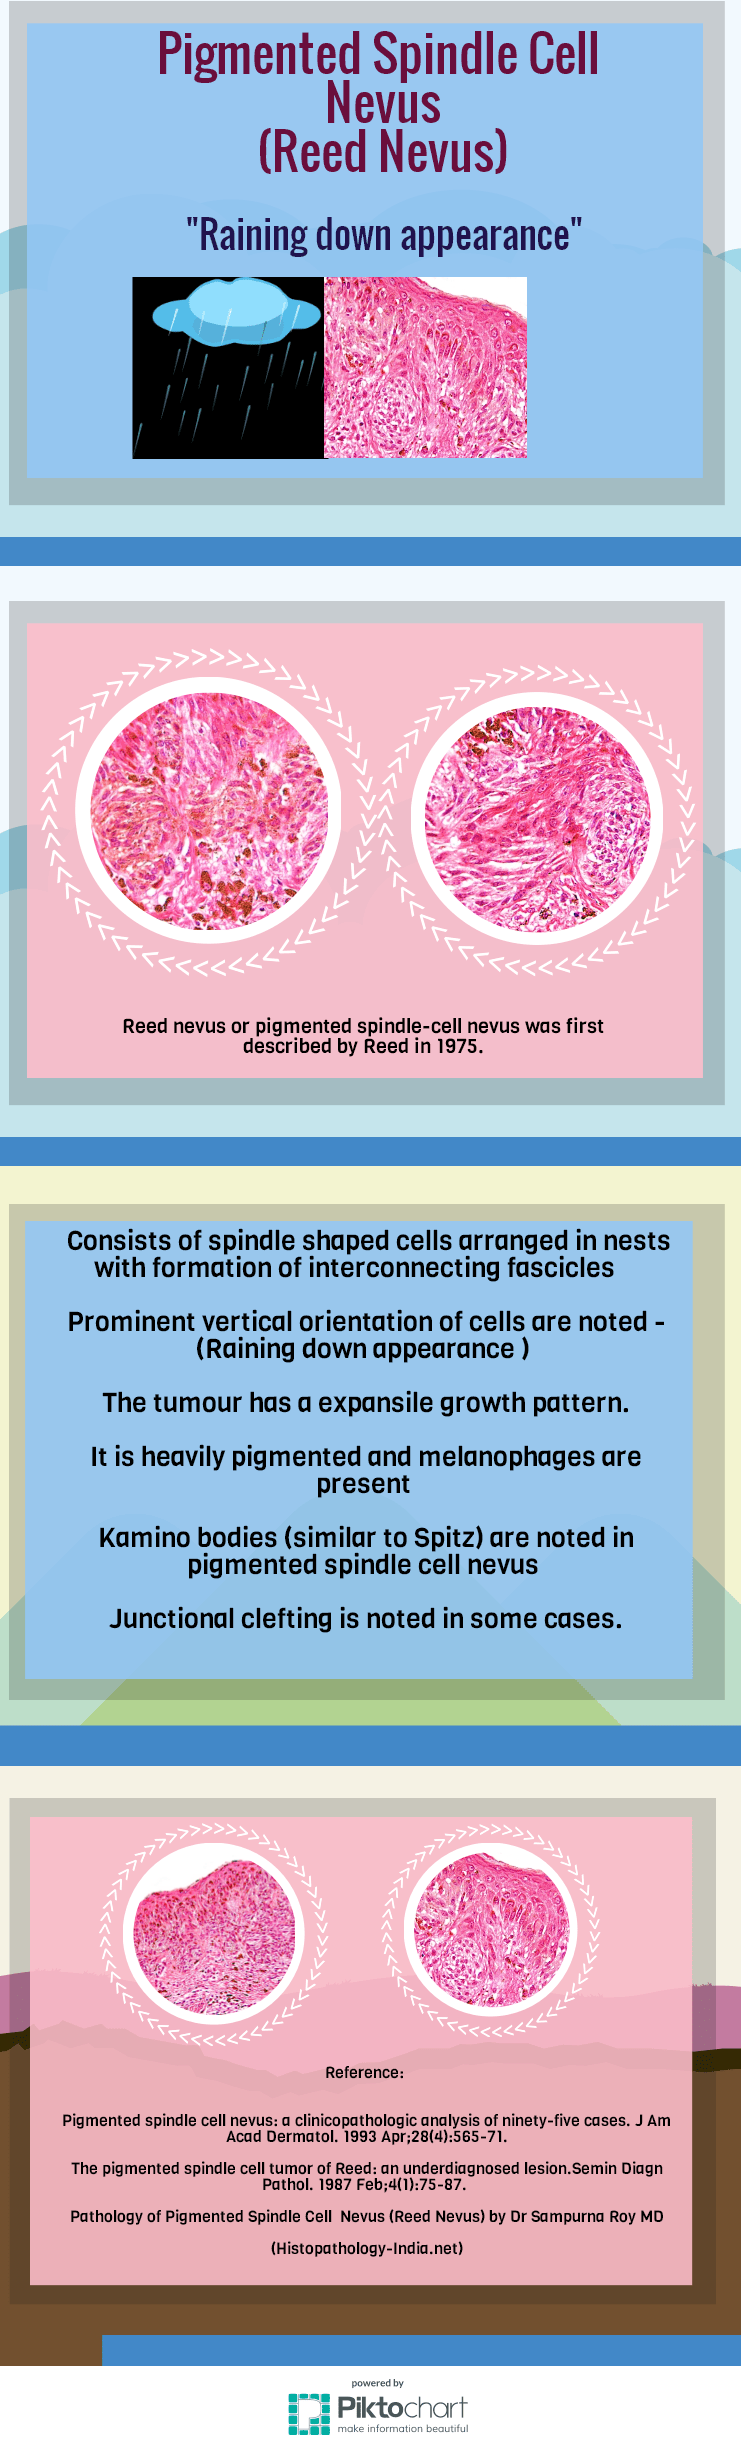 Raining down appearance of Pigmented Spindle Cell Nevus